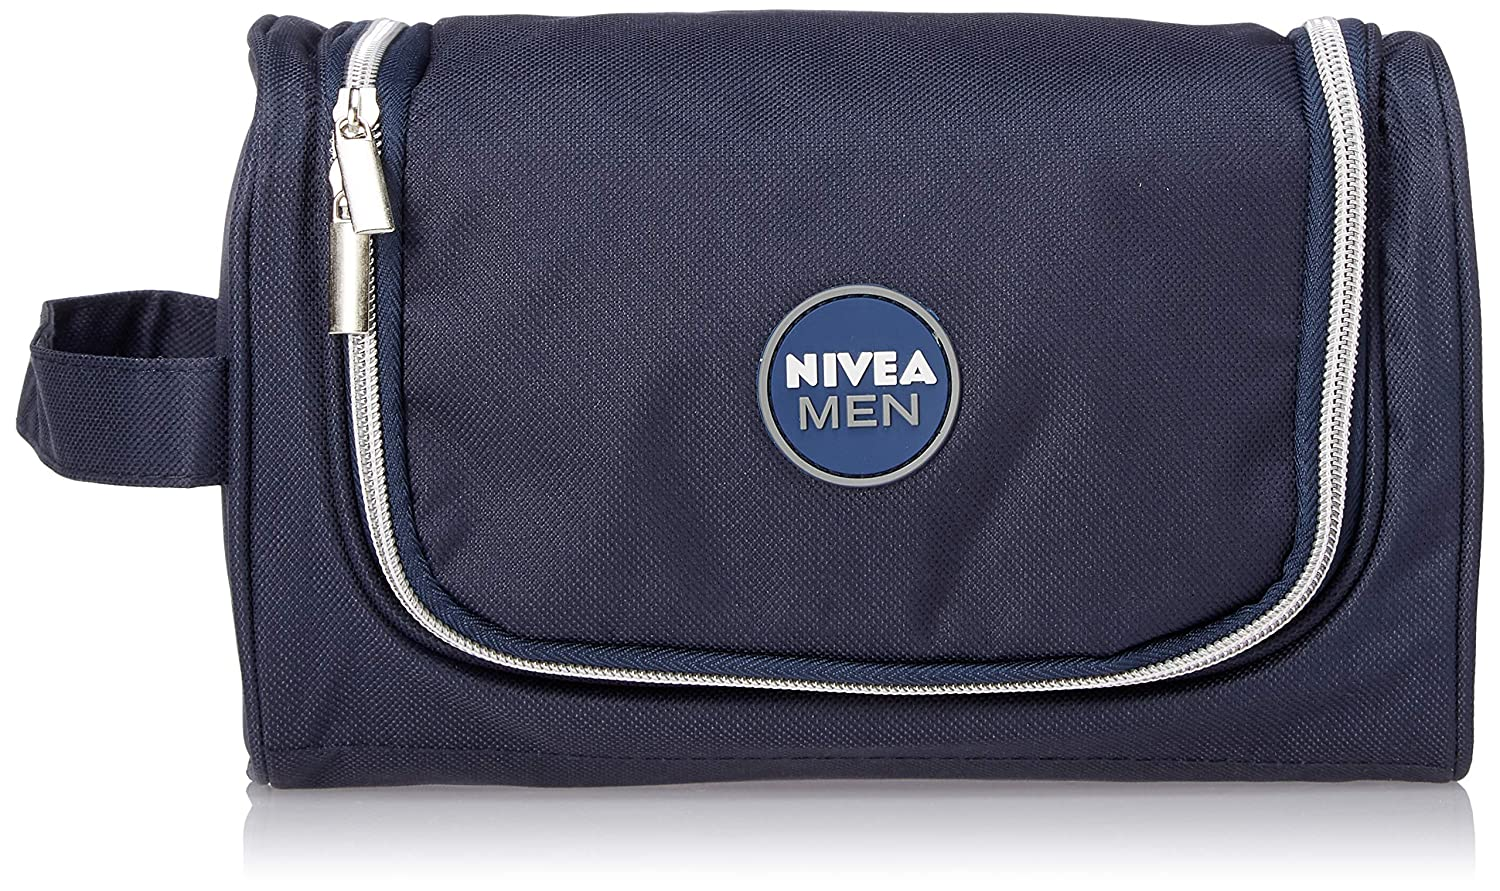 87d90b374bcb NIVEA Mens Hanging Travel Toiletry Bag Shaving Case Cosmetic Bag